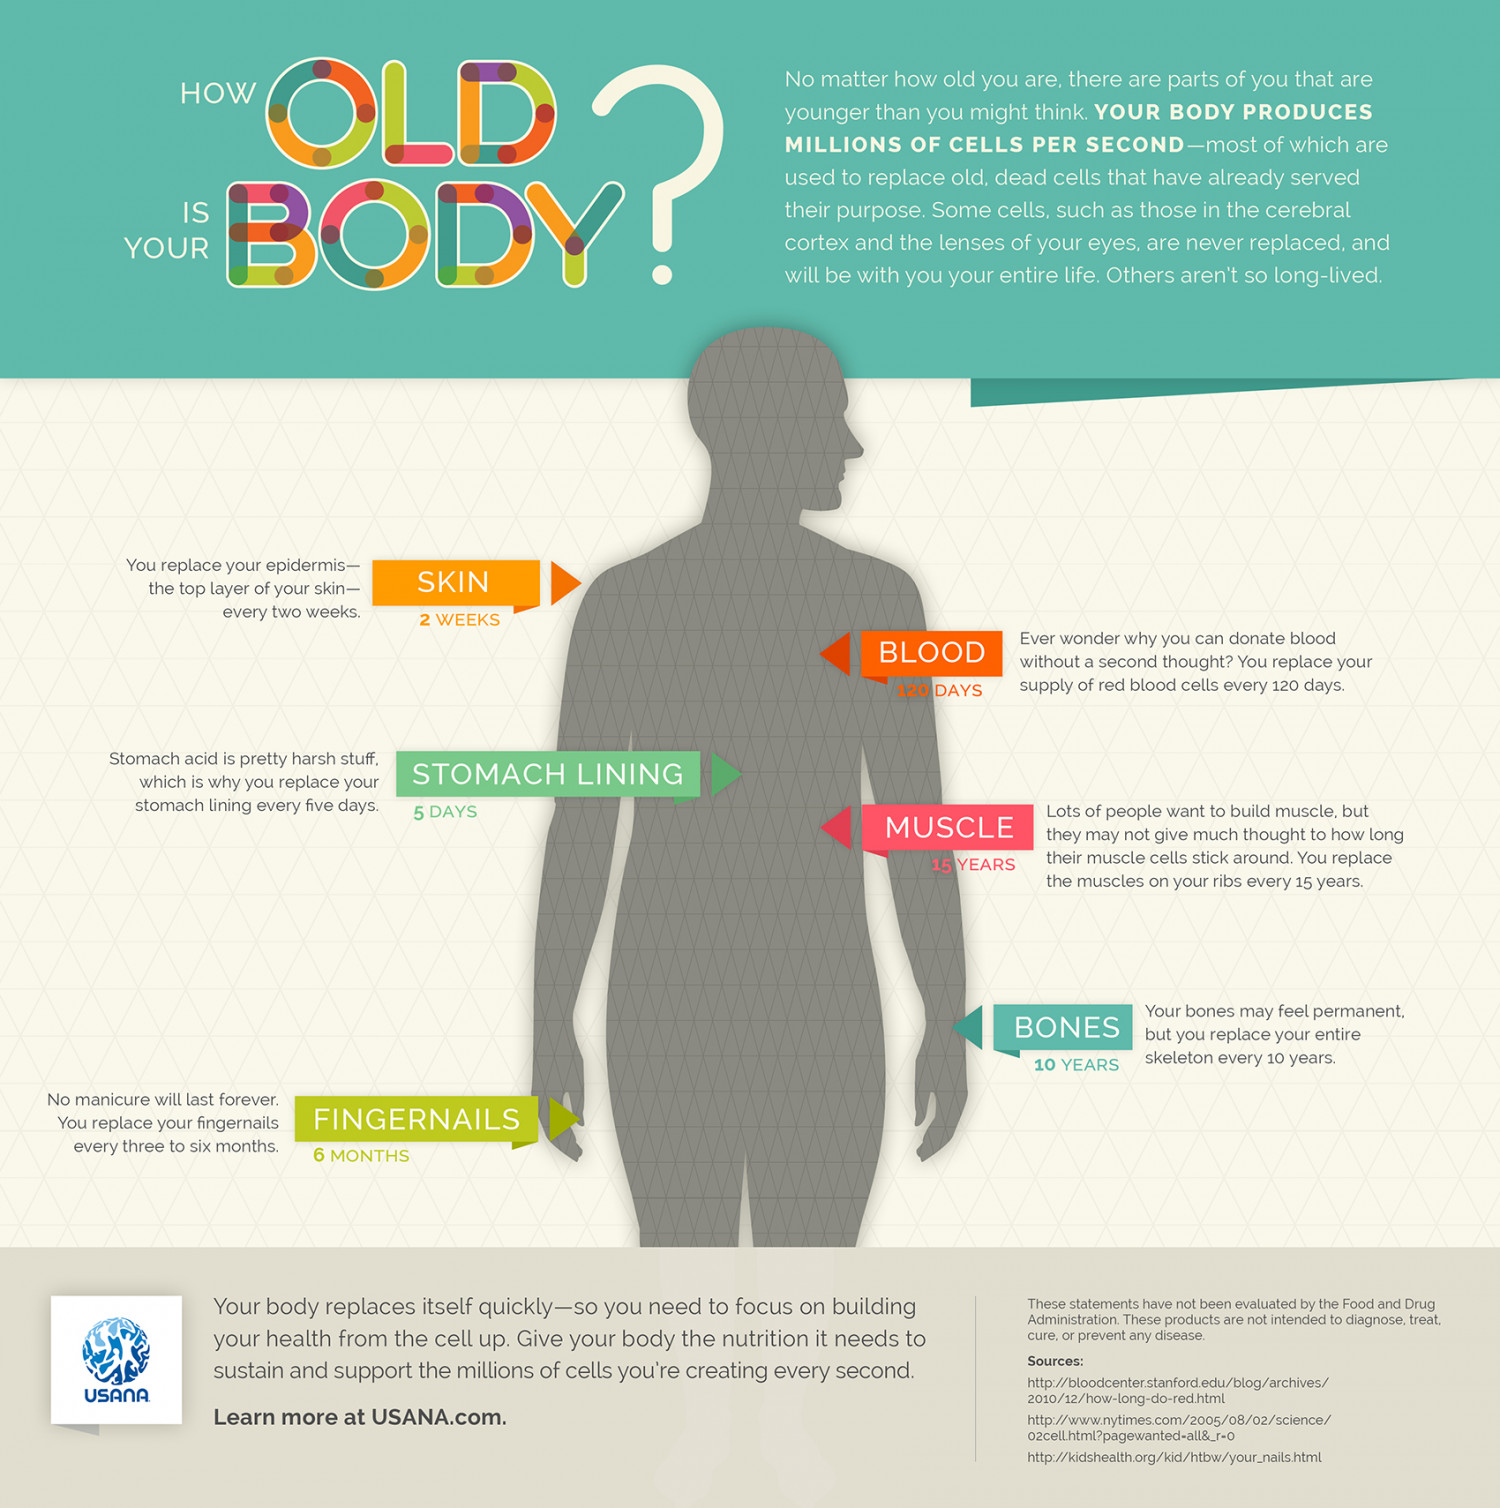 How Old is Your Body? Infographic